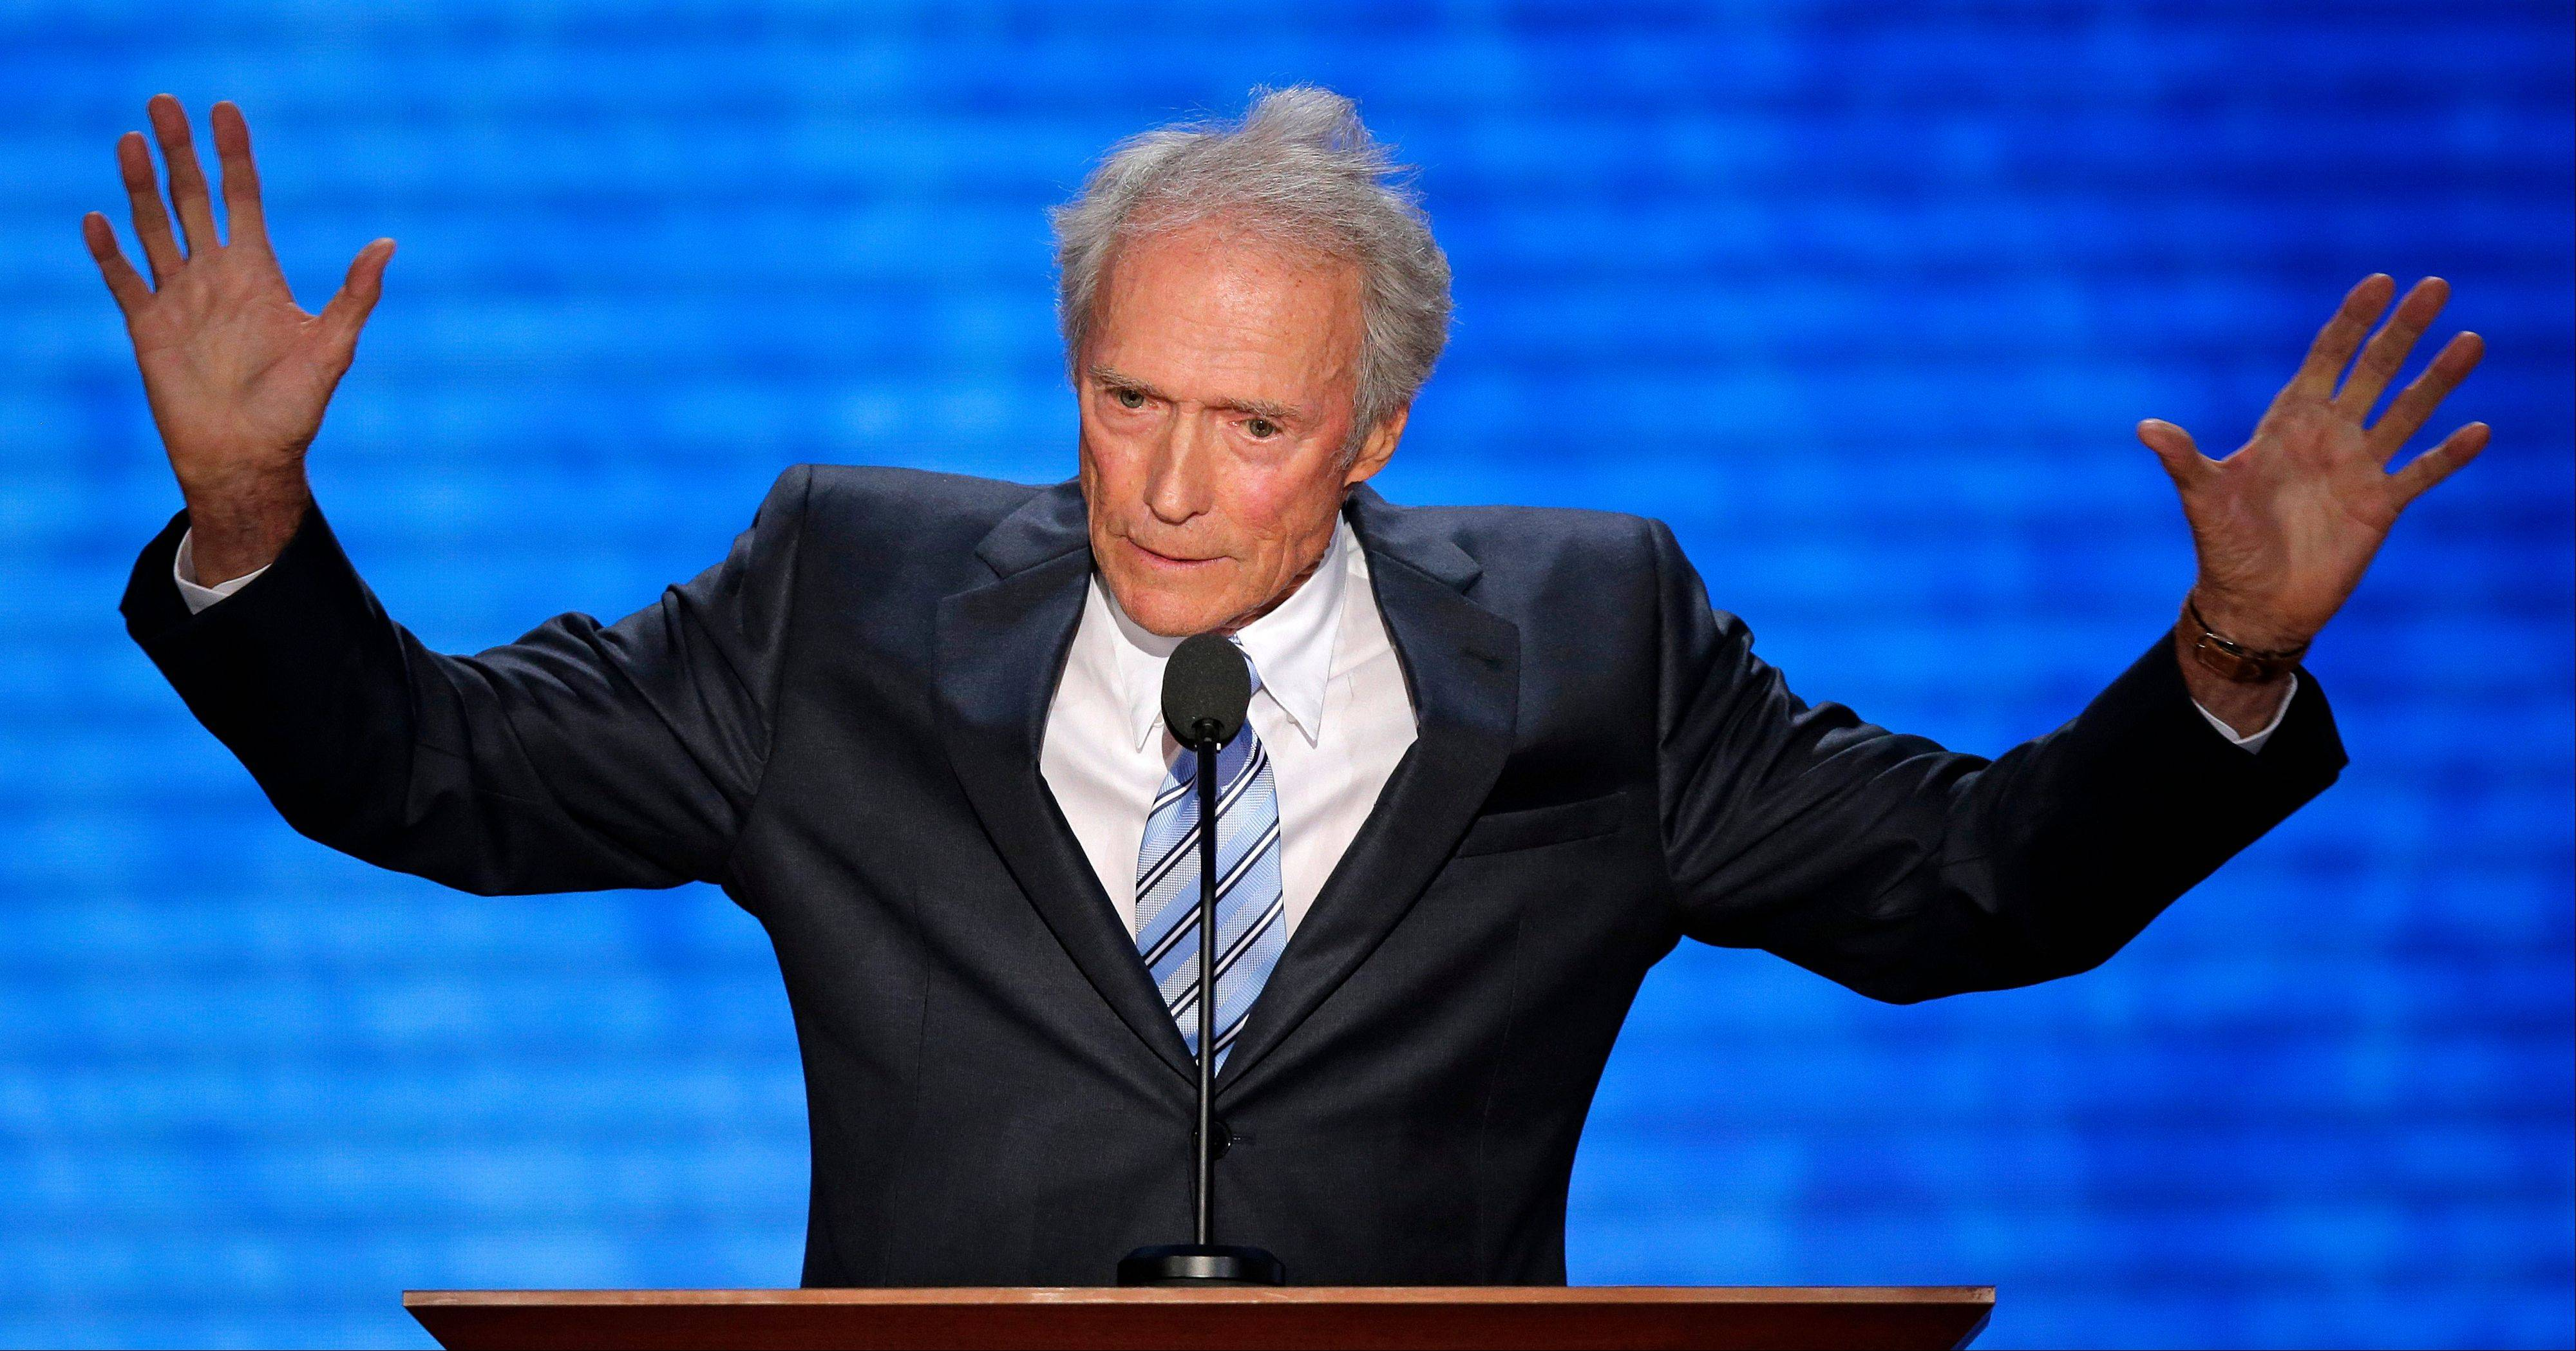 Actor Clint Eastwood addresses the Republican National Convention in Tampa, Fla., on Thursday, Aug. 30, 2012.